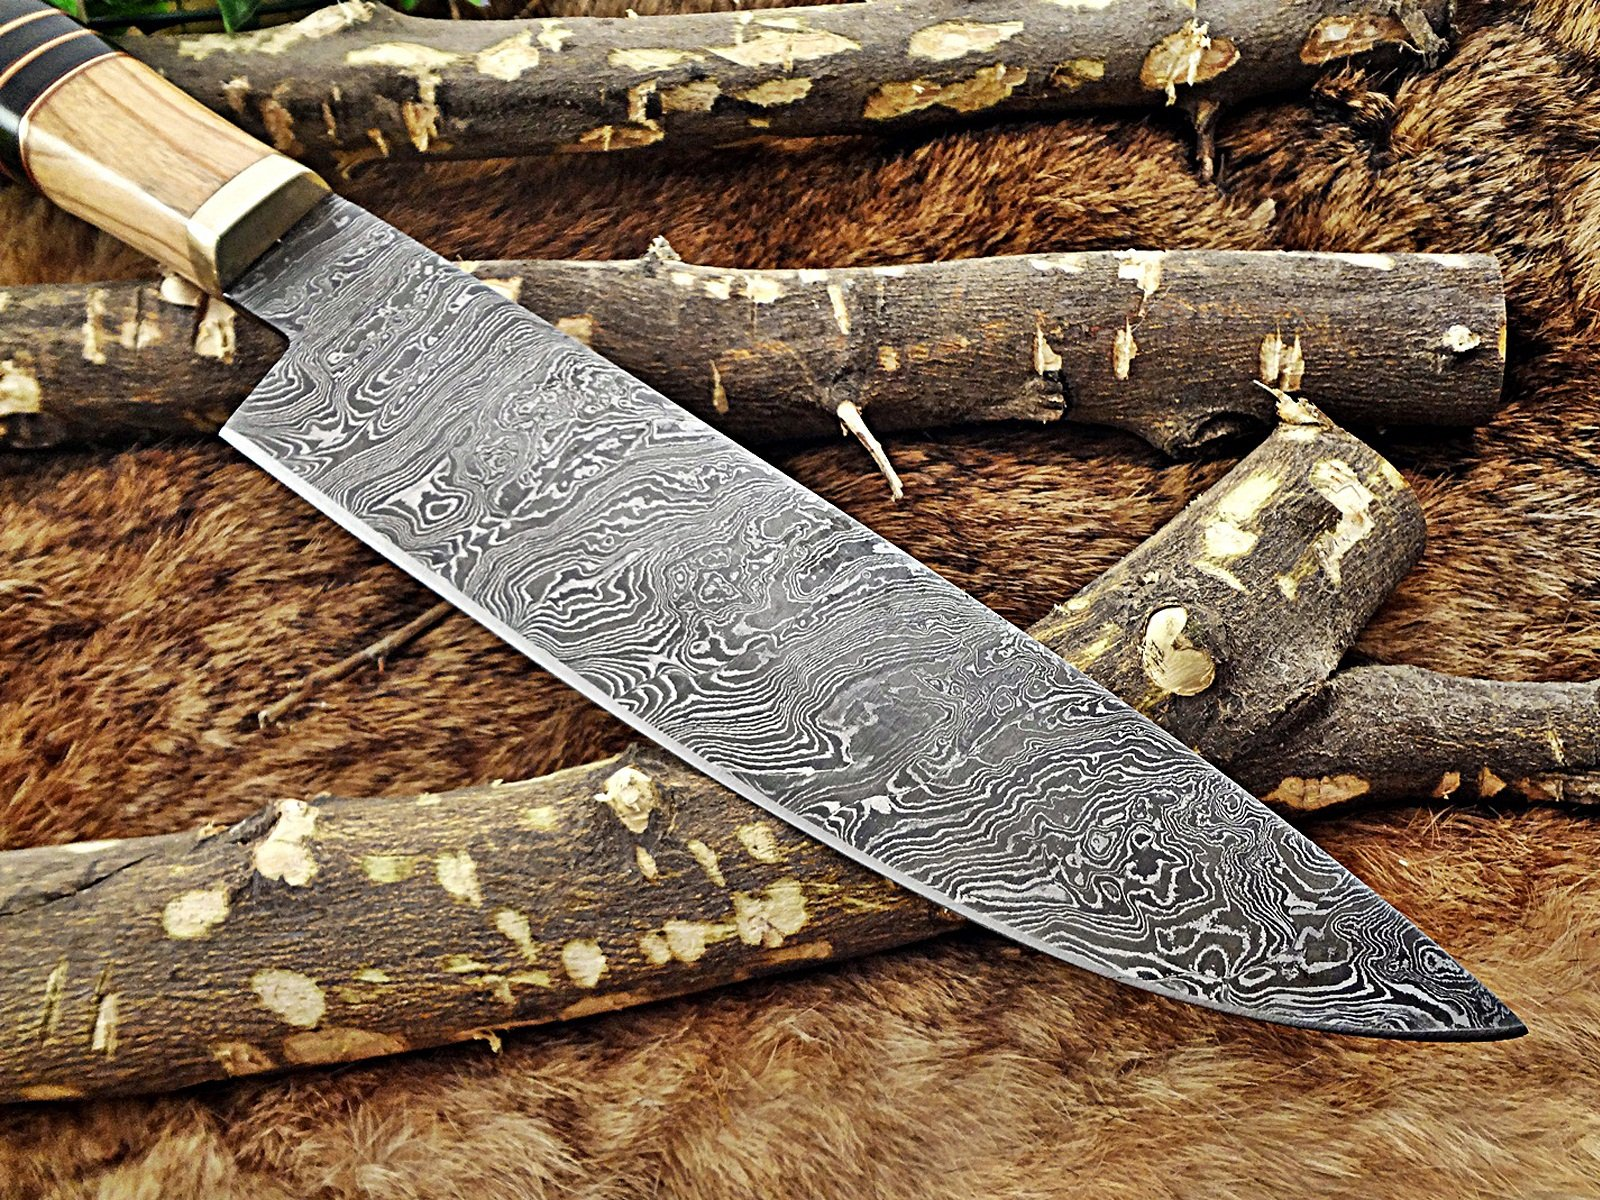 13.5 Inches long custom made Damascus steel chef Knife 8'' full tang blade Kow wood scale with brass spacer and bull horn round scale by Damascus Depot (Image #6)